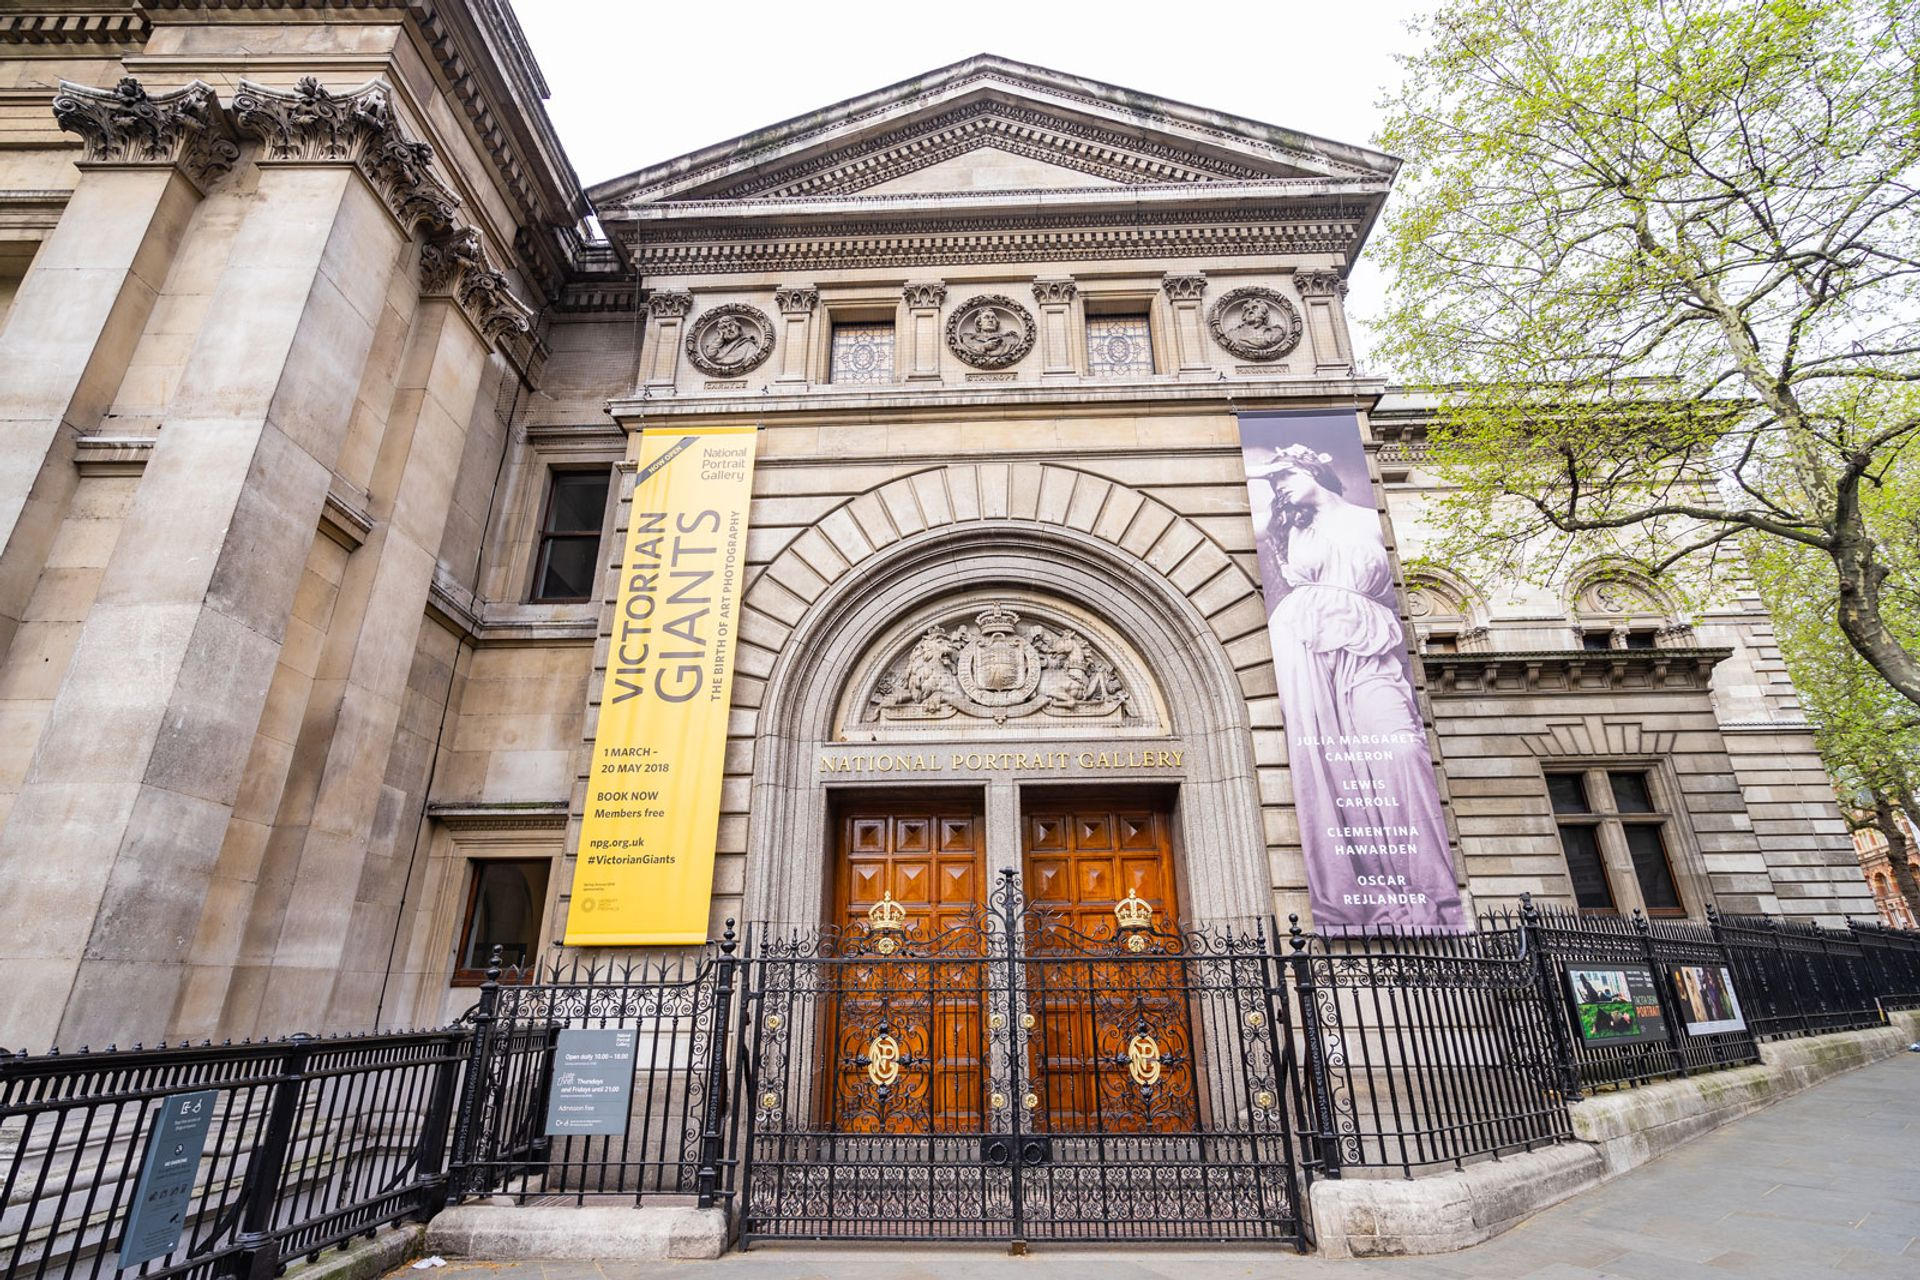 The National Portrait Gallery in London has been at the centre of a sponsorship controversy Wiki Commons